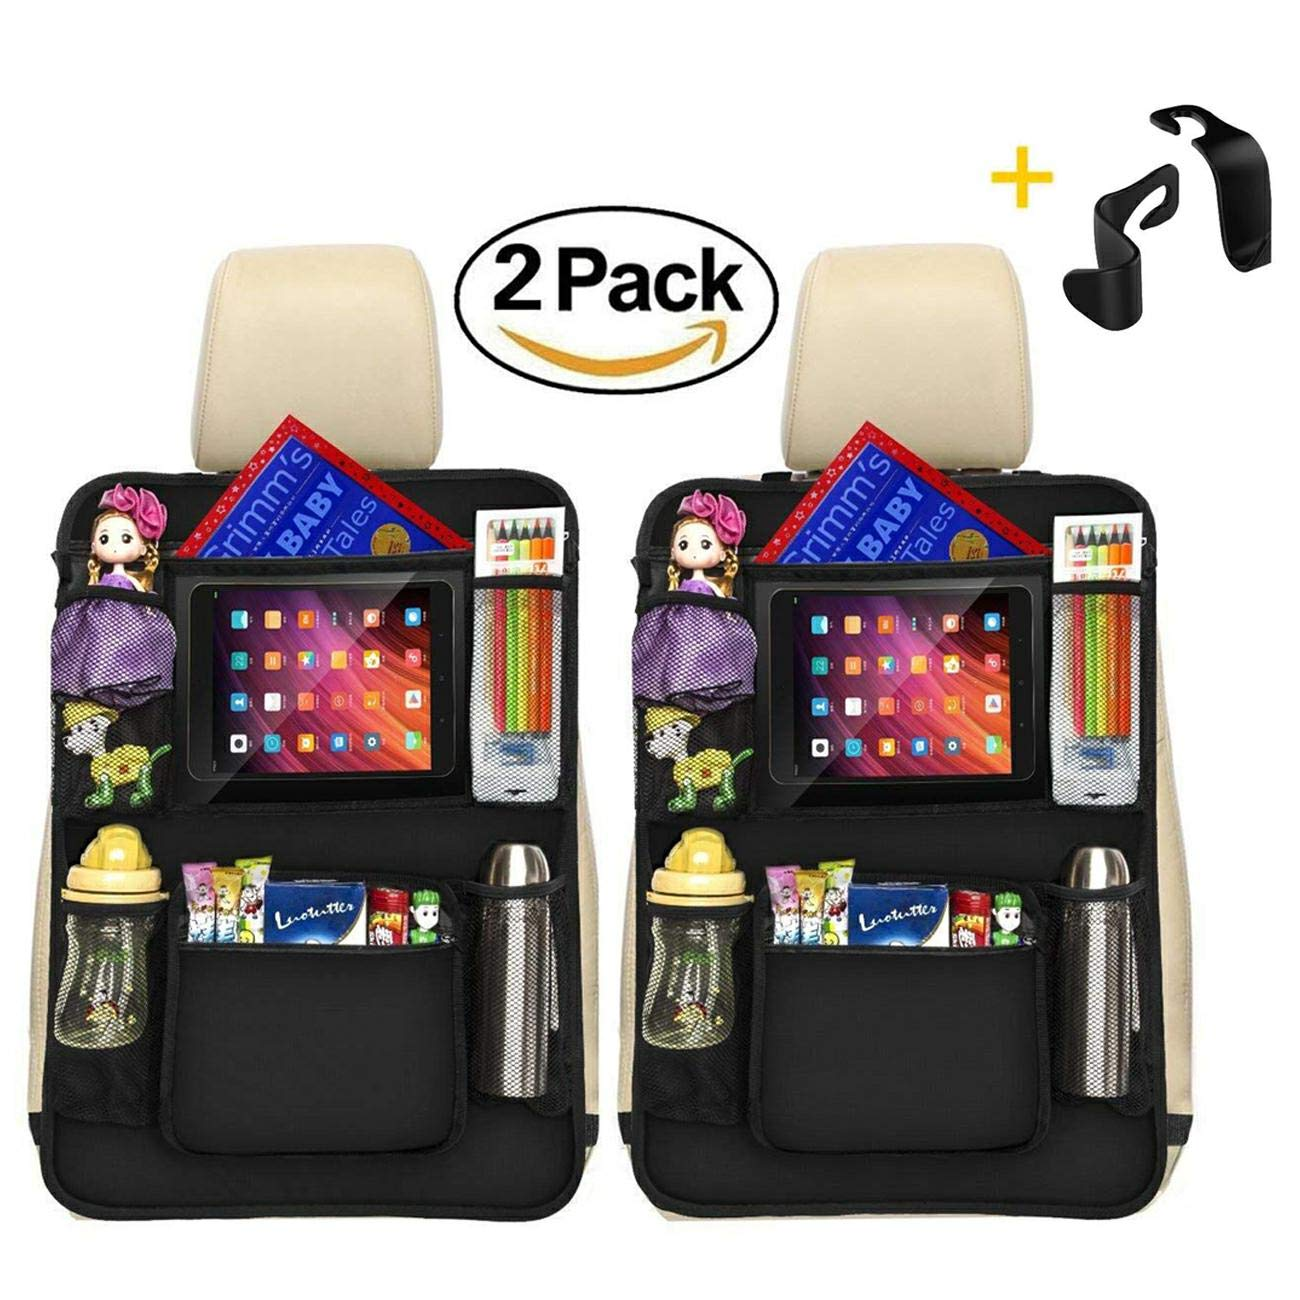 Luxury Kick Mats,Premium Car Back Seat Protector Organizer with Tablet Holder for Ipad & Android Tablets up to 10.5